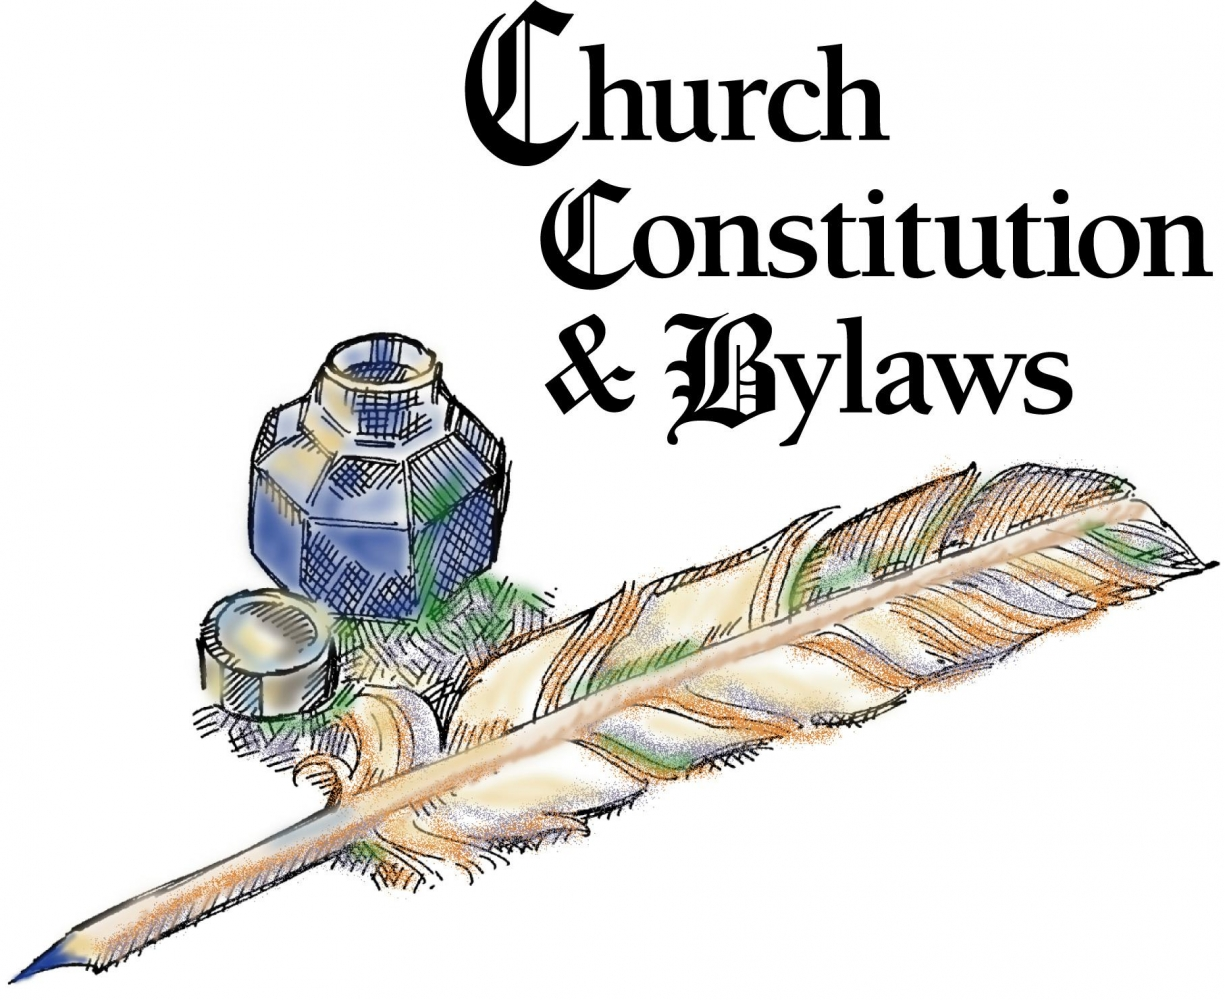 Constitution and bylaws dix hill evangelical free church maxwellsz